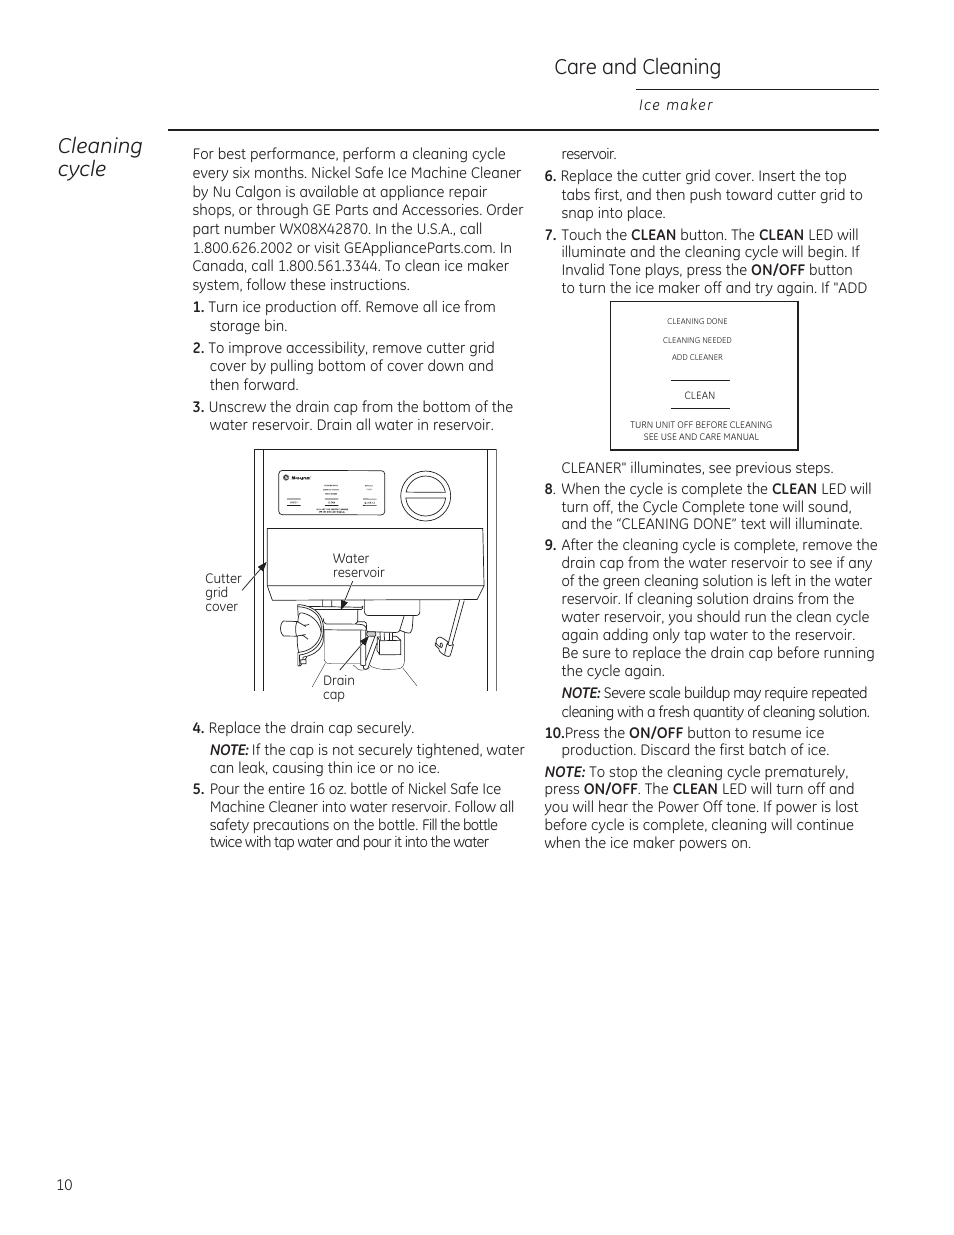 Care and cleaning, Cleaning cycle | GE ZDIS150ZSS User Manual | Page 10 / 16